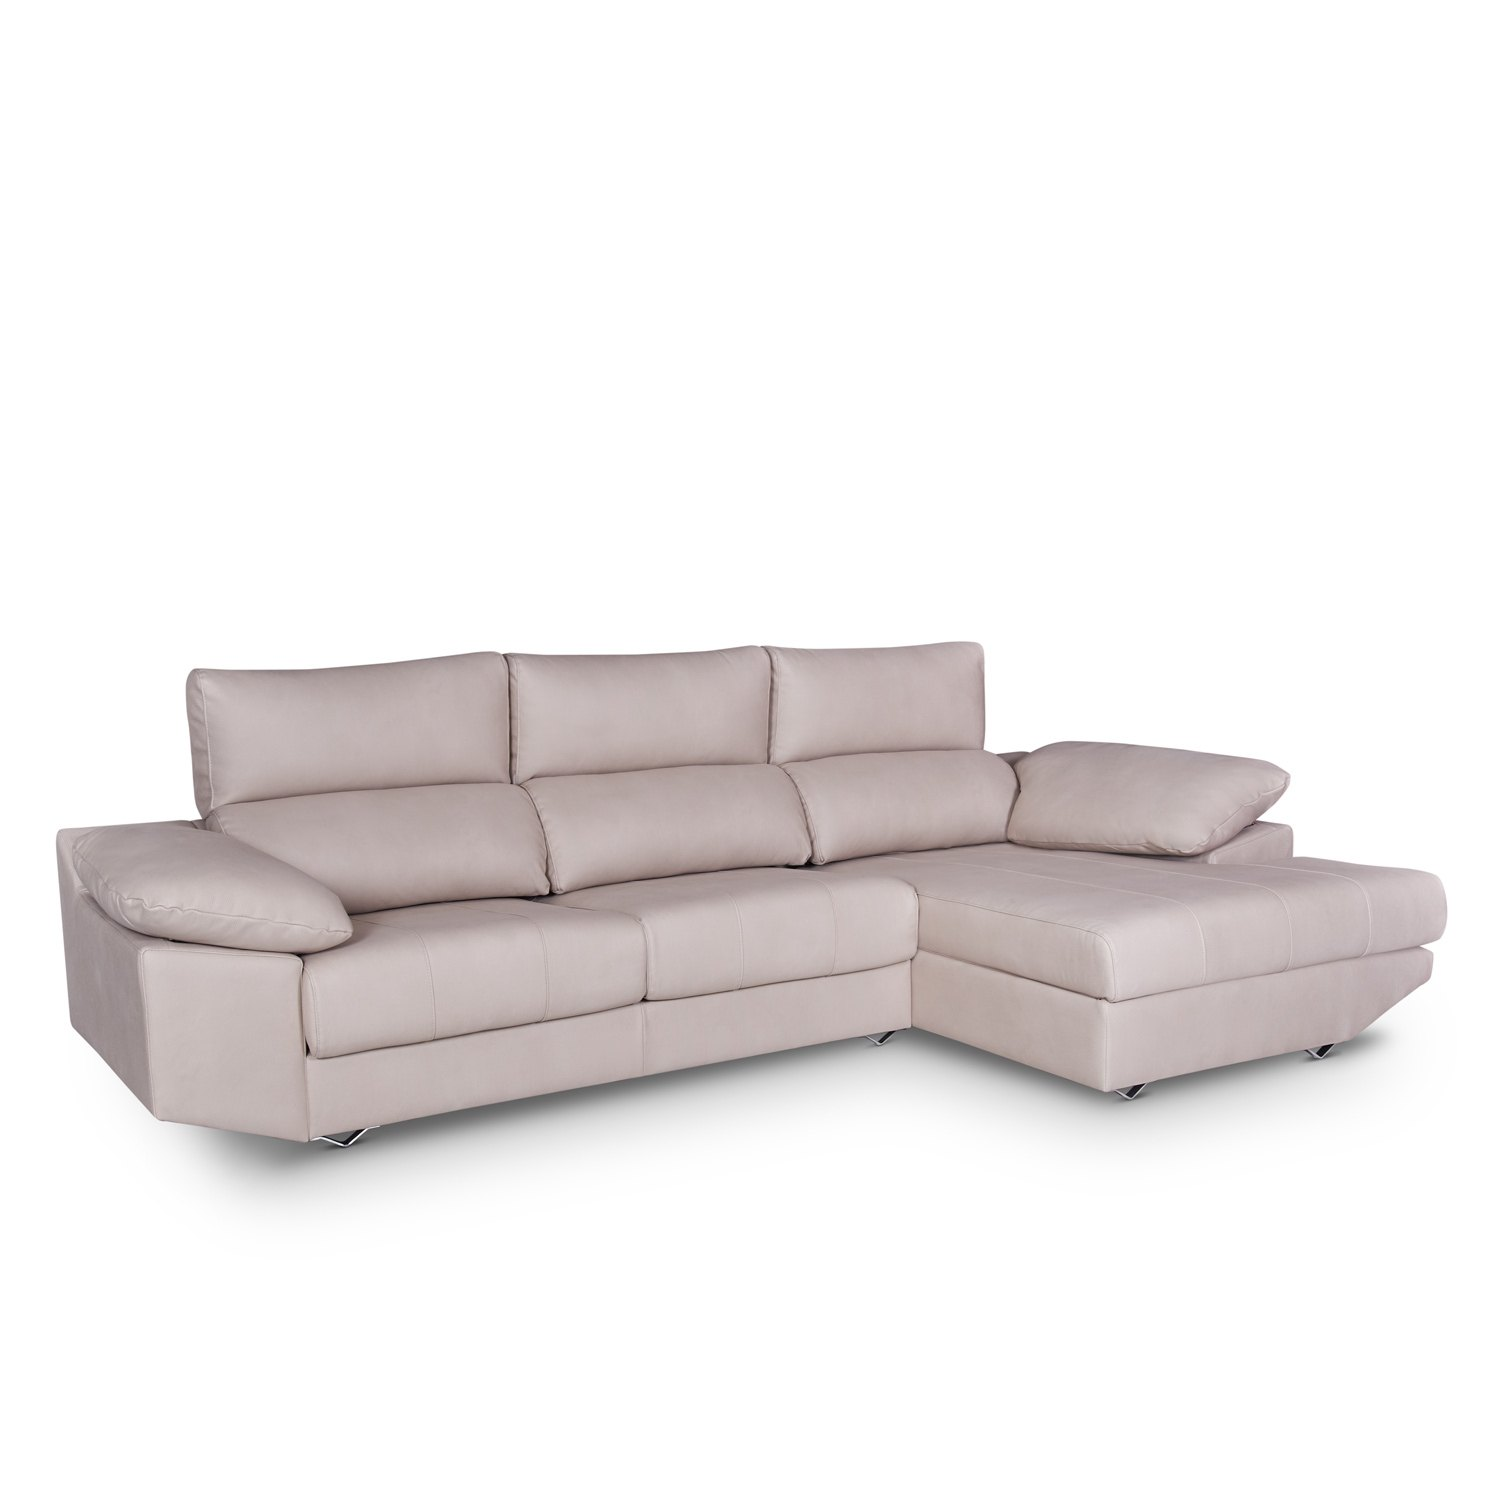 sofa con chaise longue con arc n c modo en tres colores